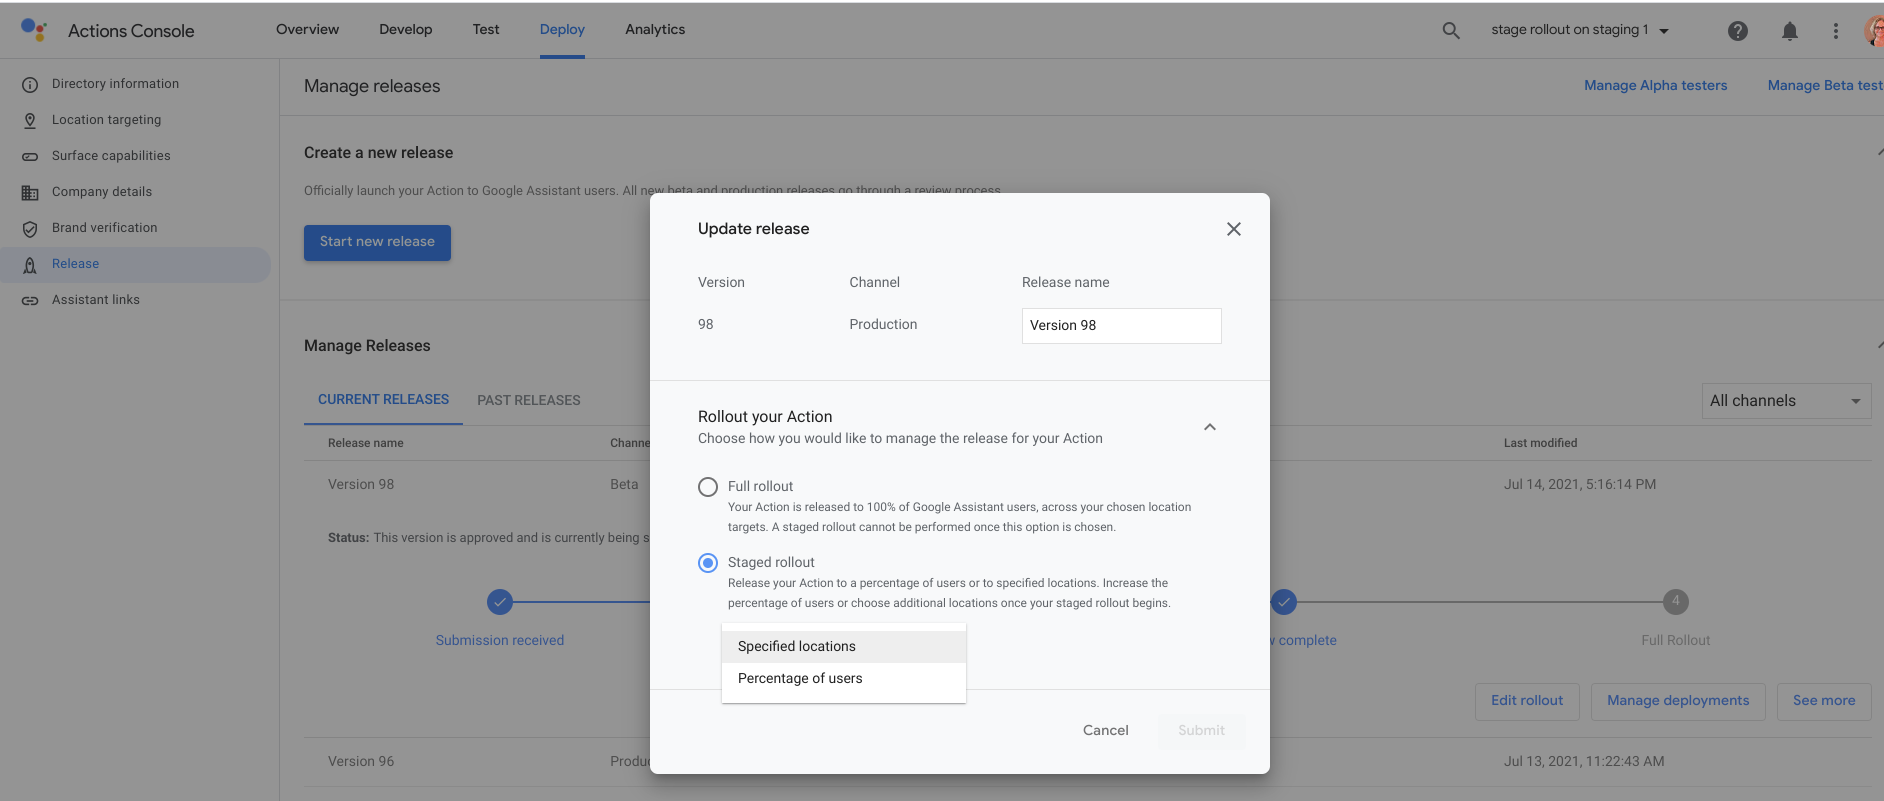 Screenshot of selecting staged rollout